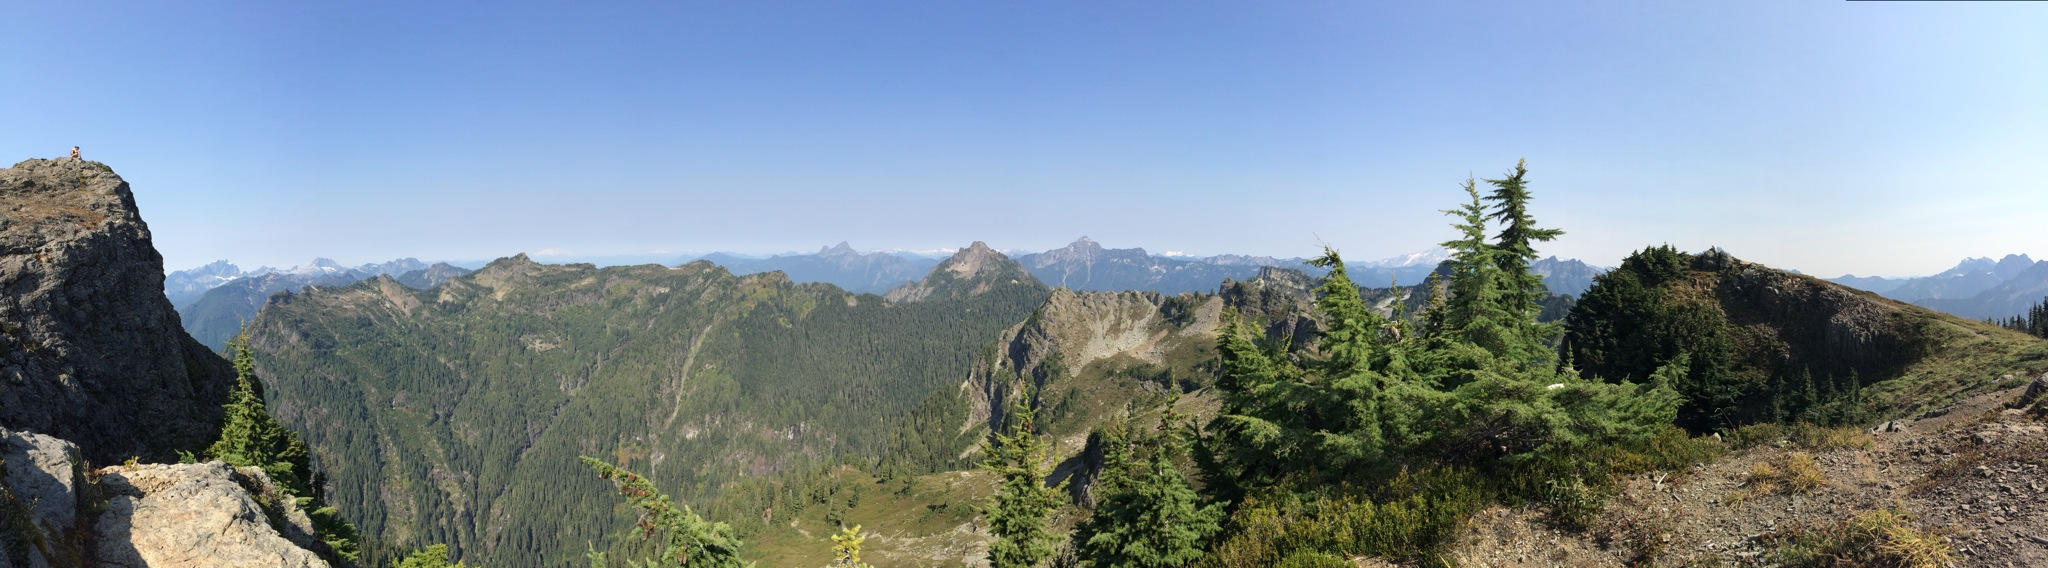 Dickerman_Pano